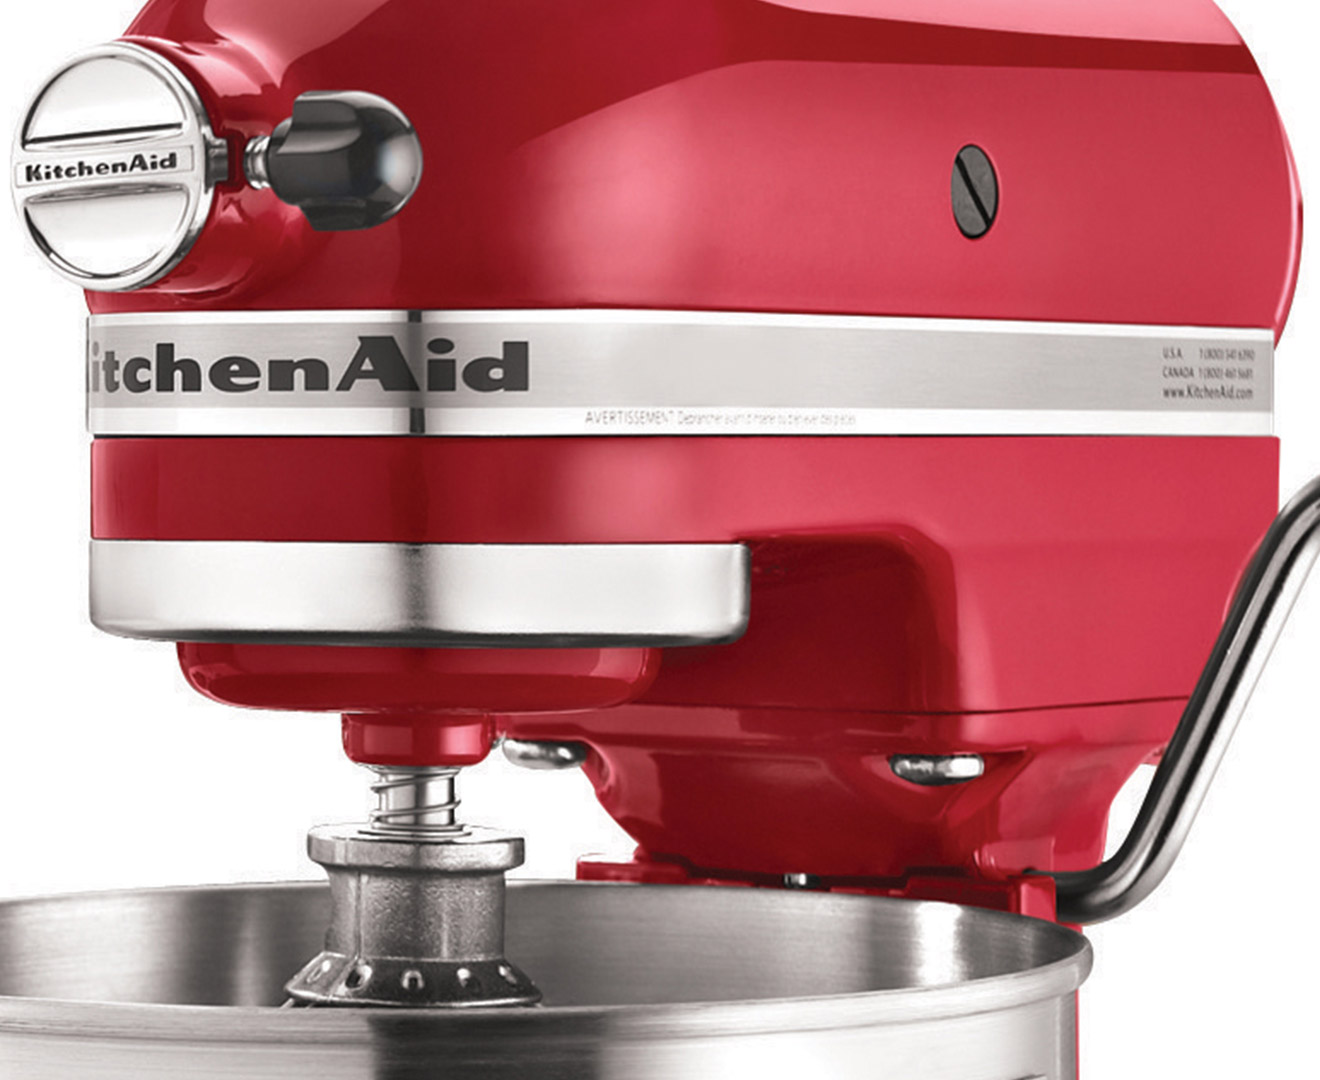 Kitchenaid Kpm5 Bowl Lift Stand Mixer Refurb Red Catch Com Au